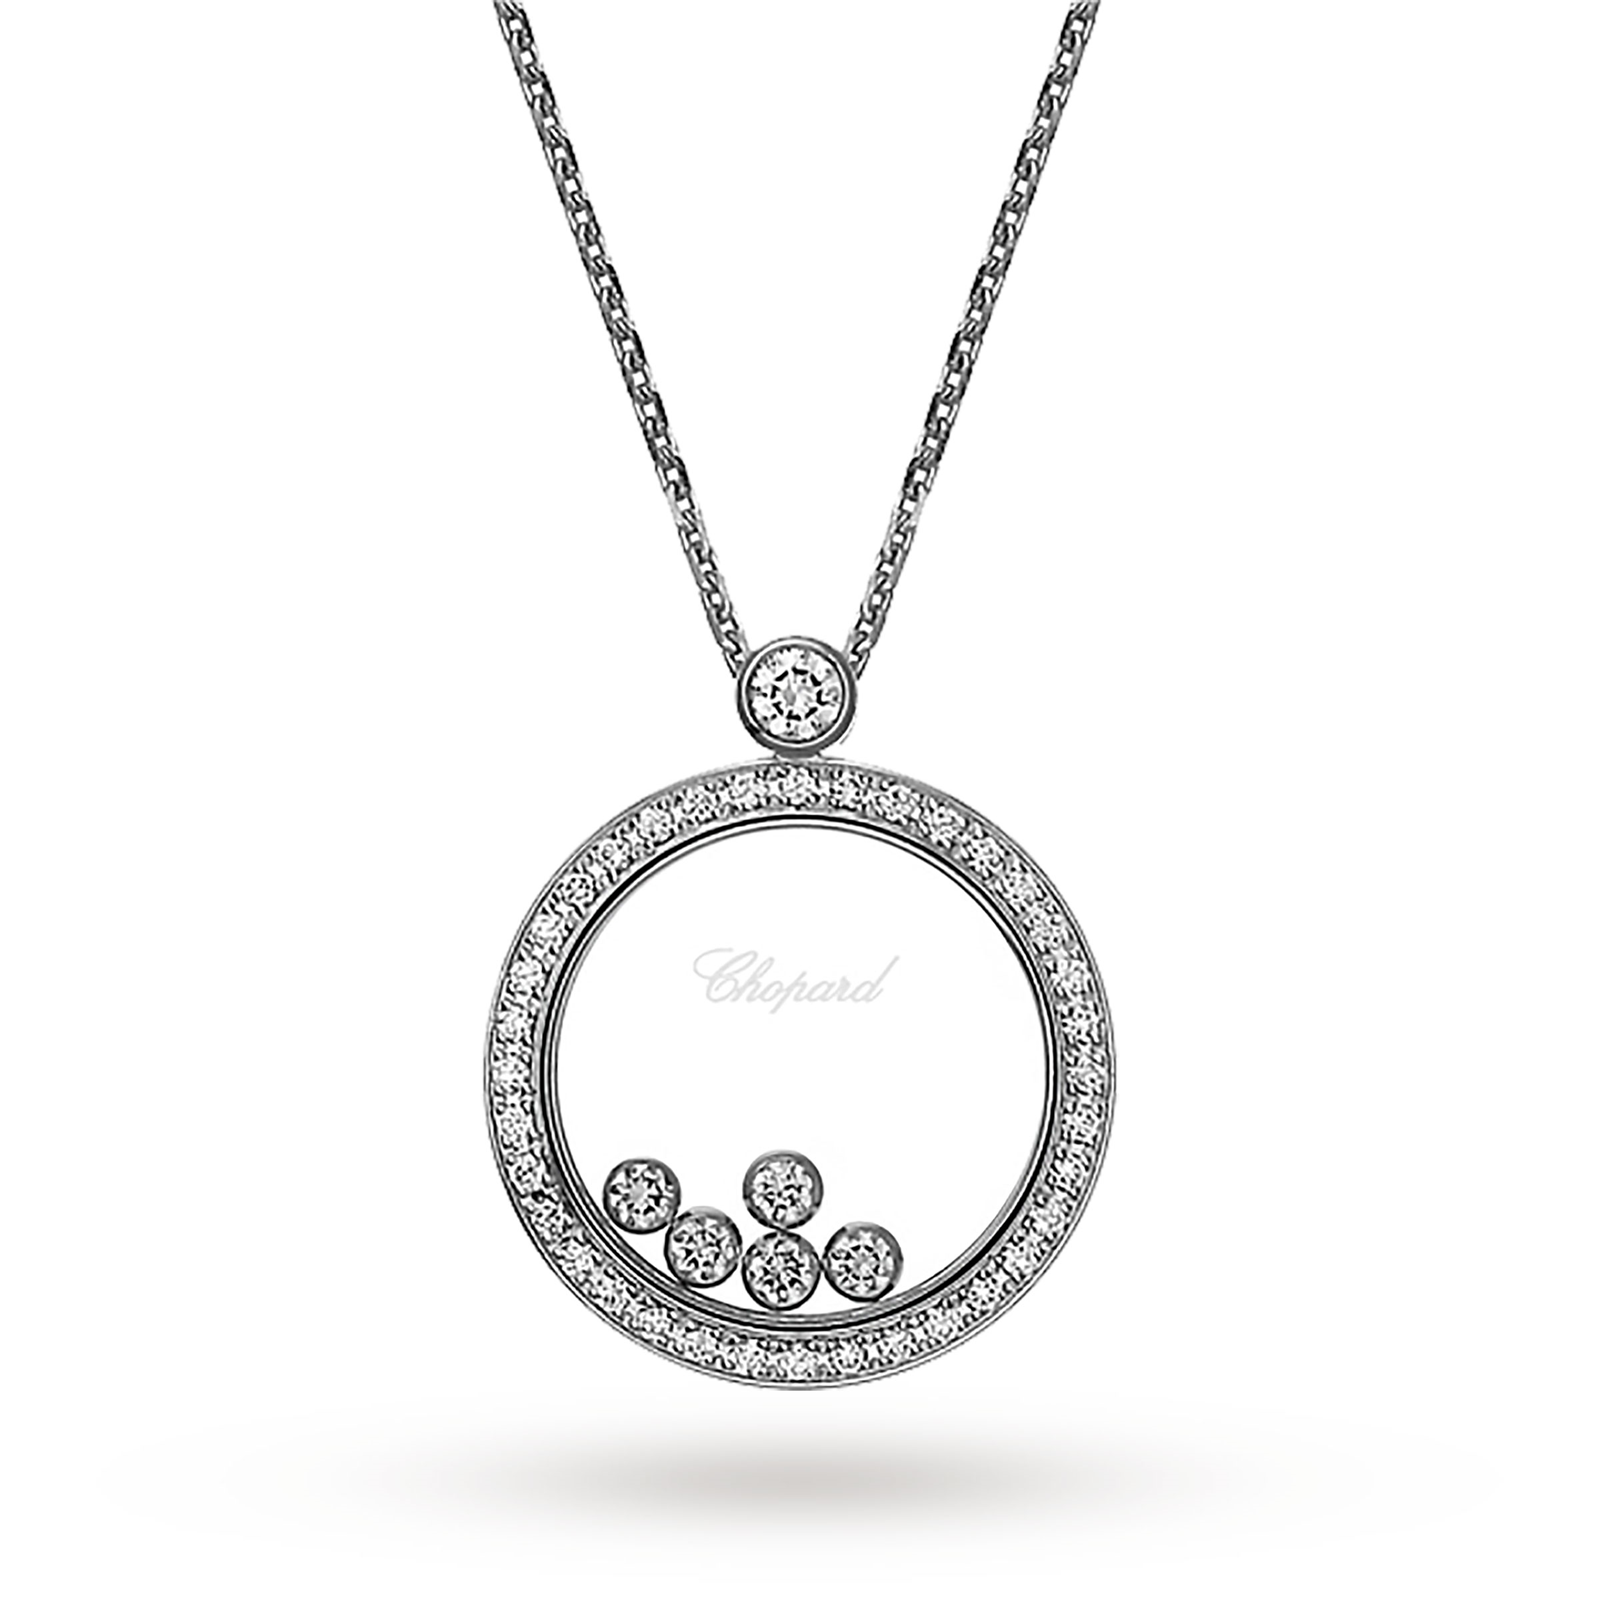 Chopard happy diamonds 18ct white gold pendant necklaces chopard happy diamonds 18ct white gold pendant aloadofball Gallery